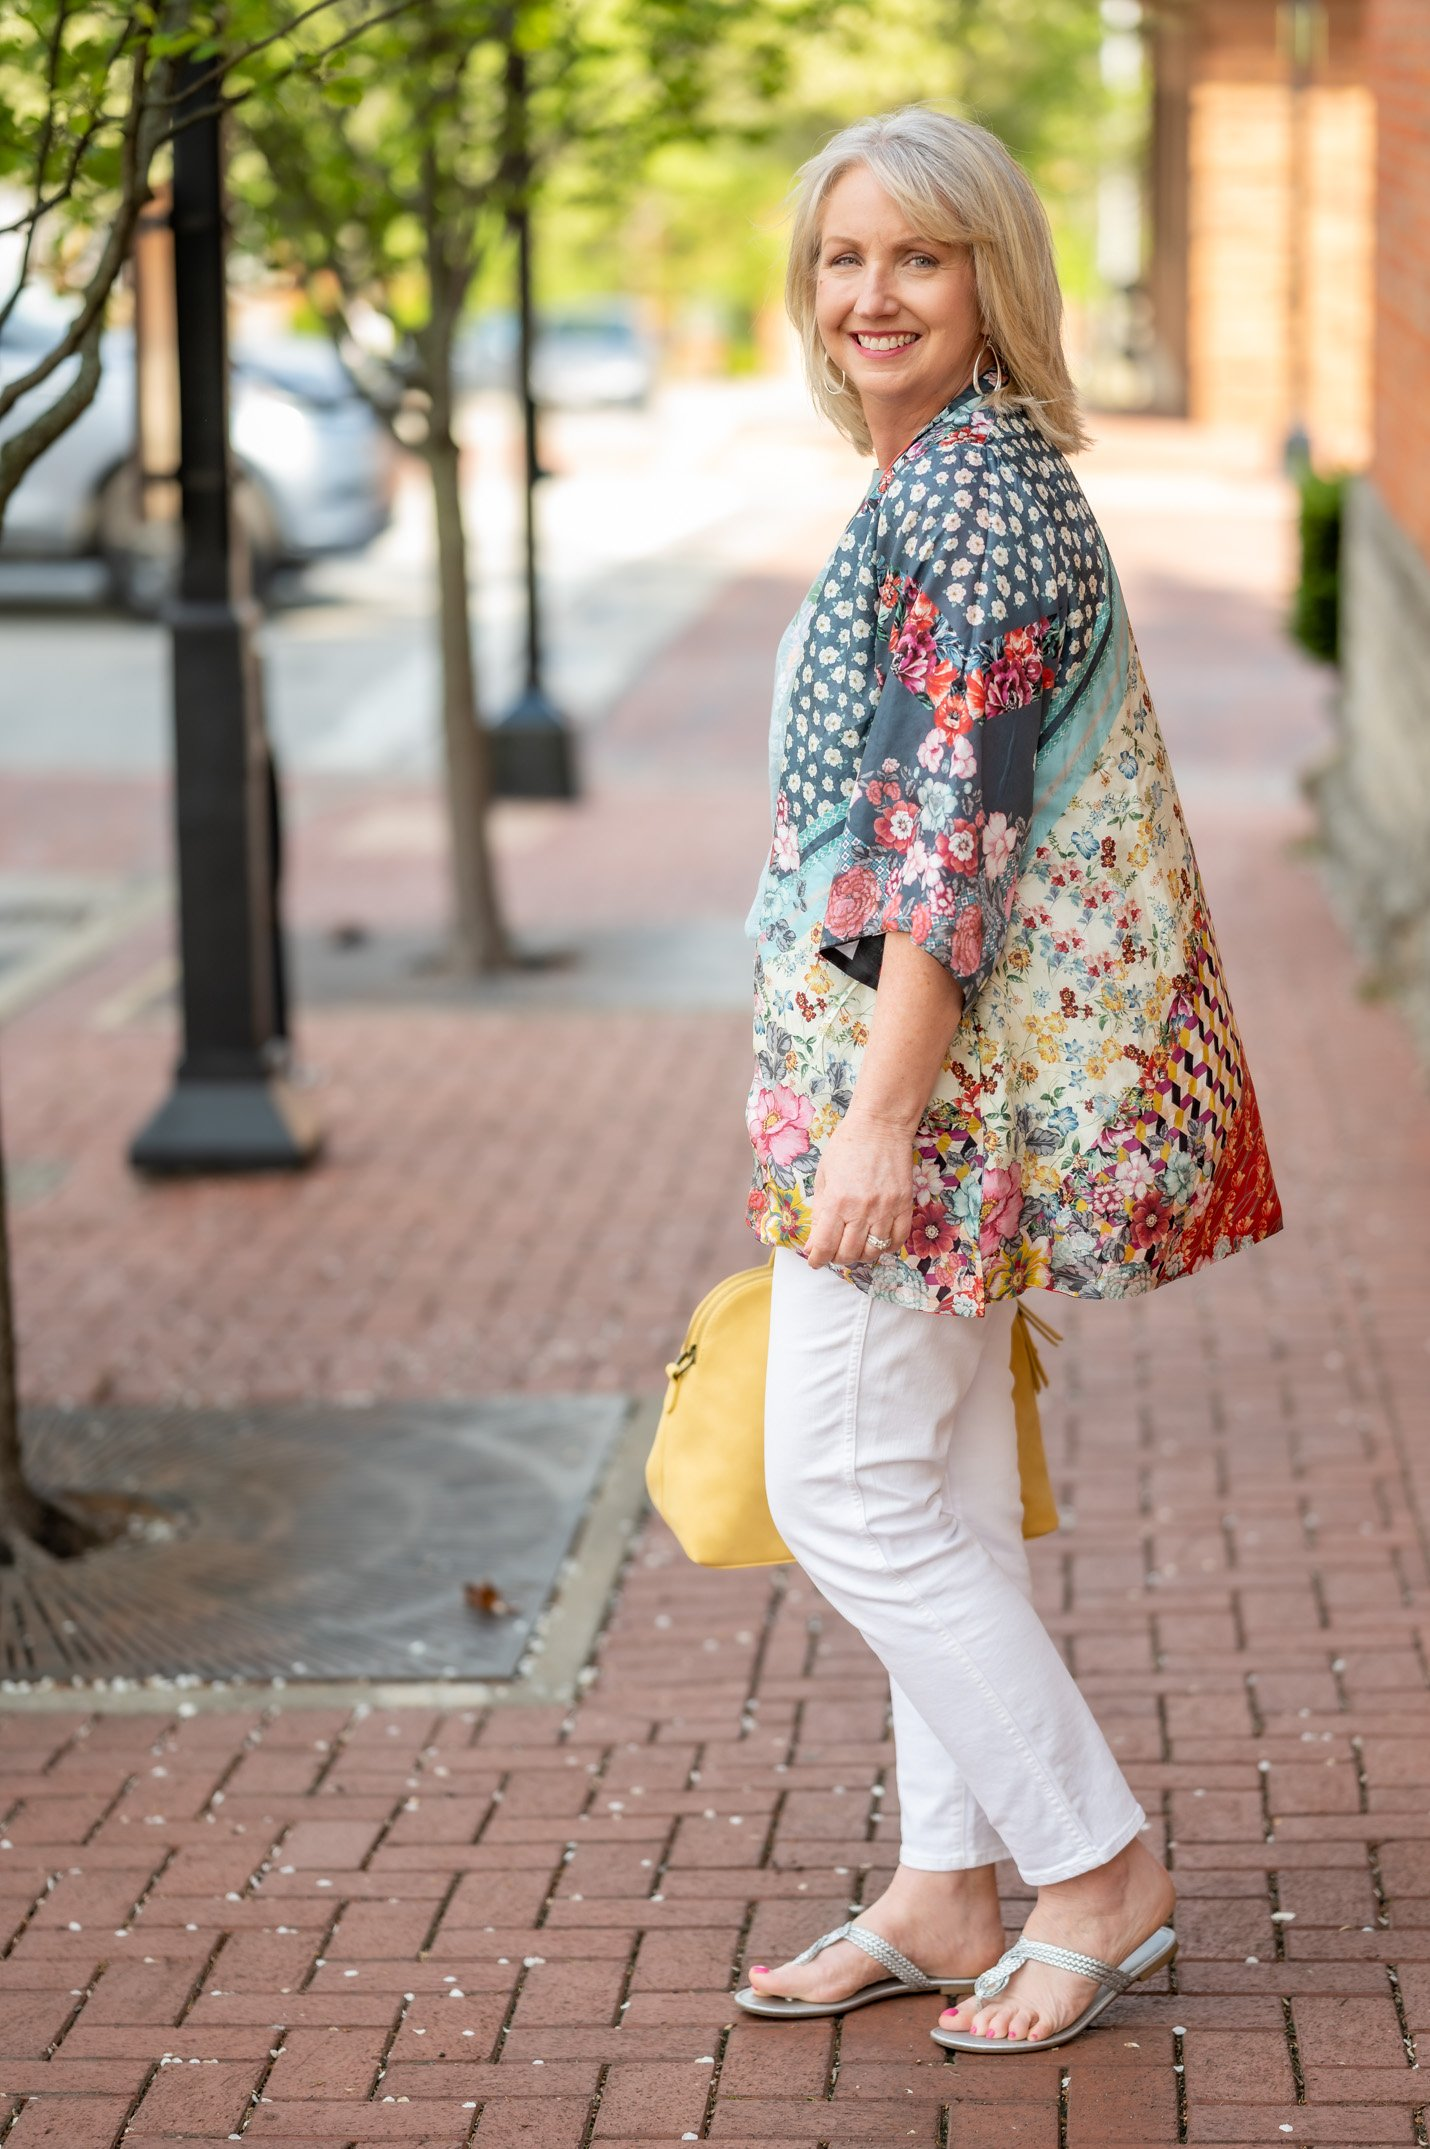 Graphic Tee and Floral Kimono for Spring